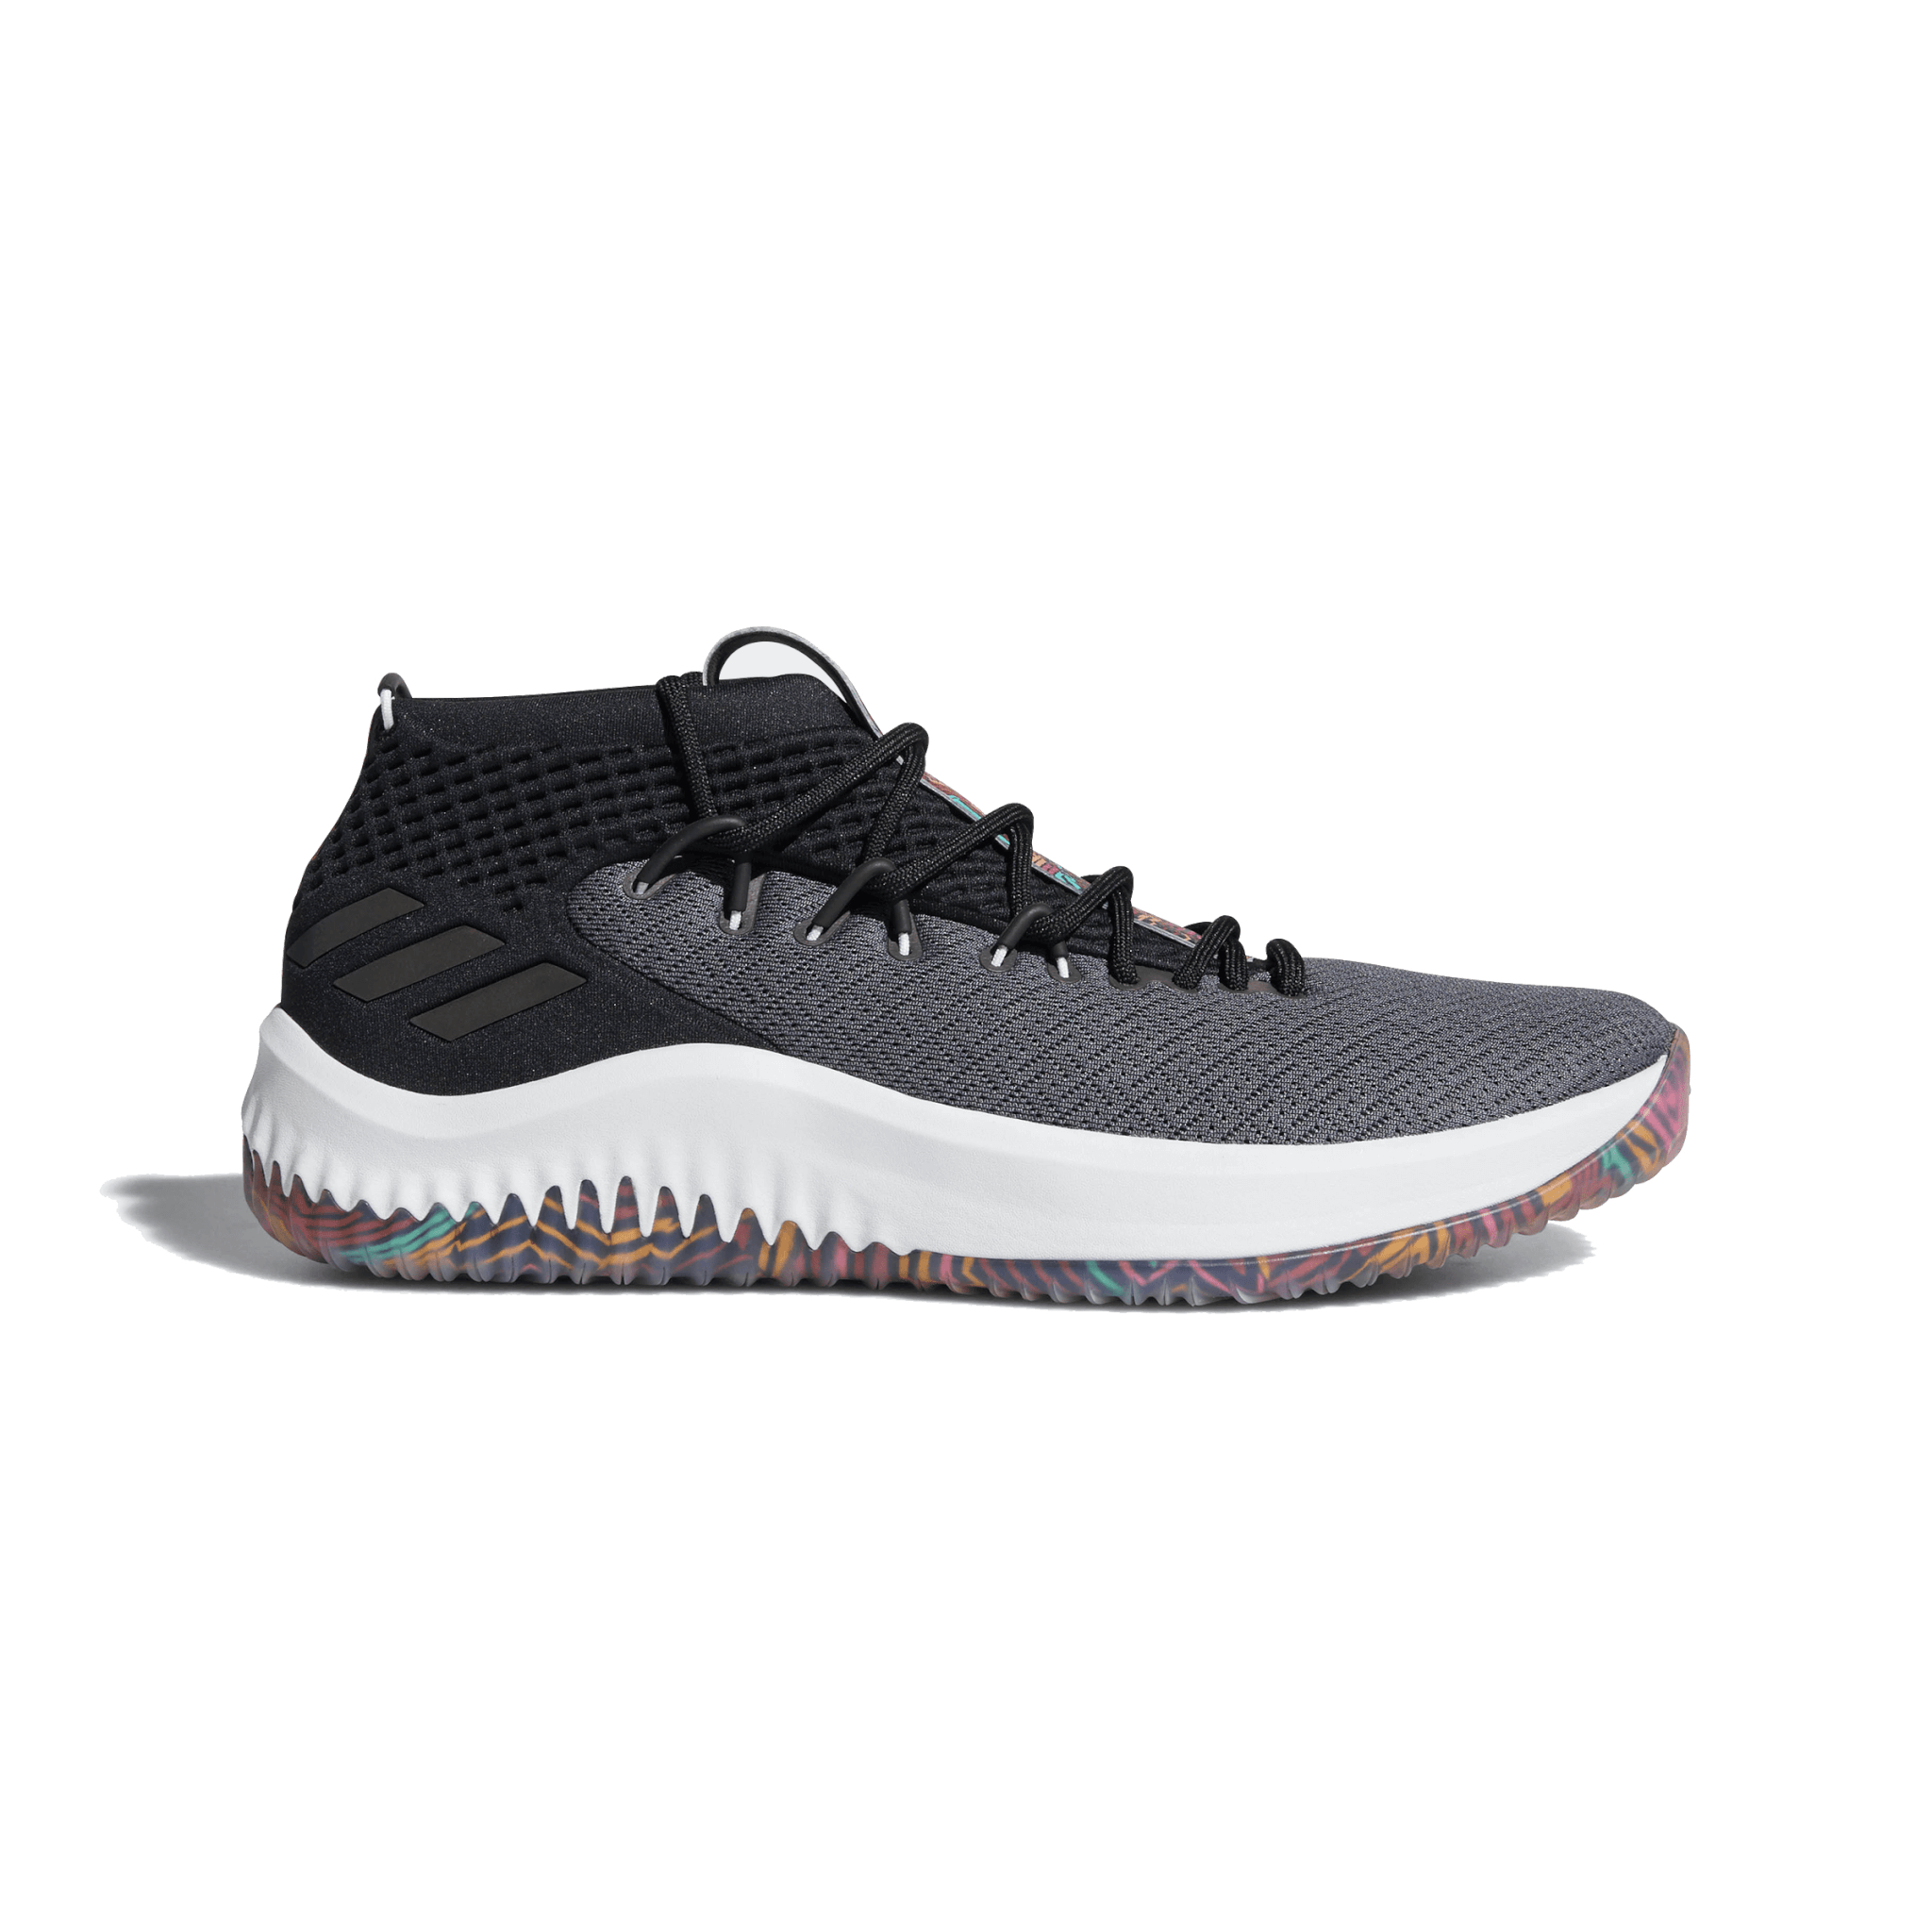 buy online 54458 73d1d Adidas Dame 4 Performance Review